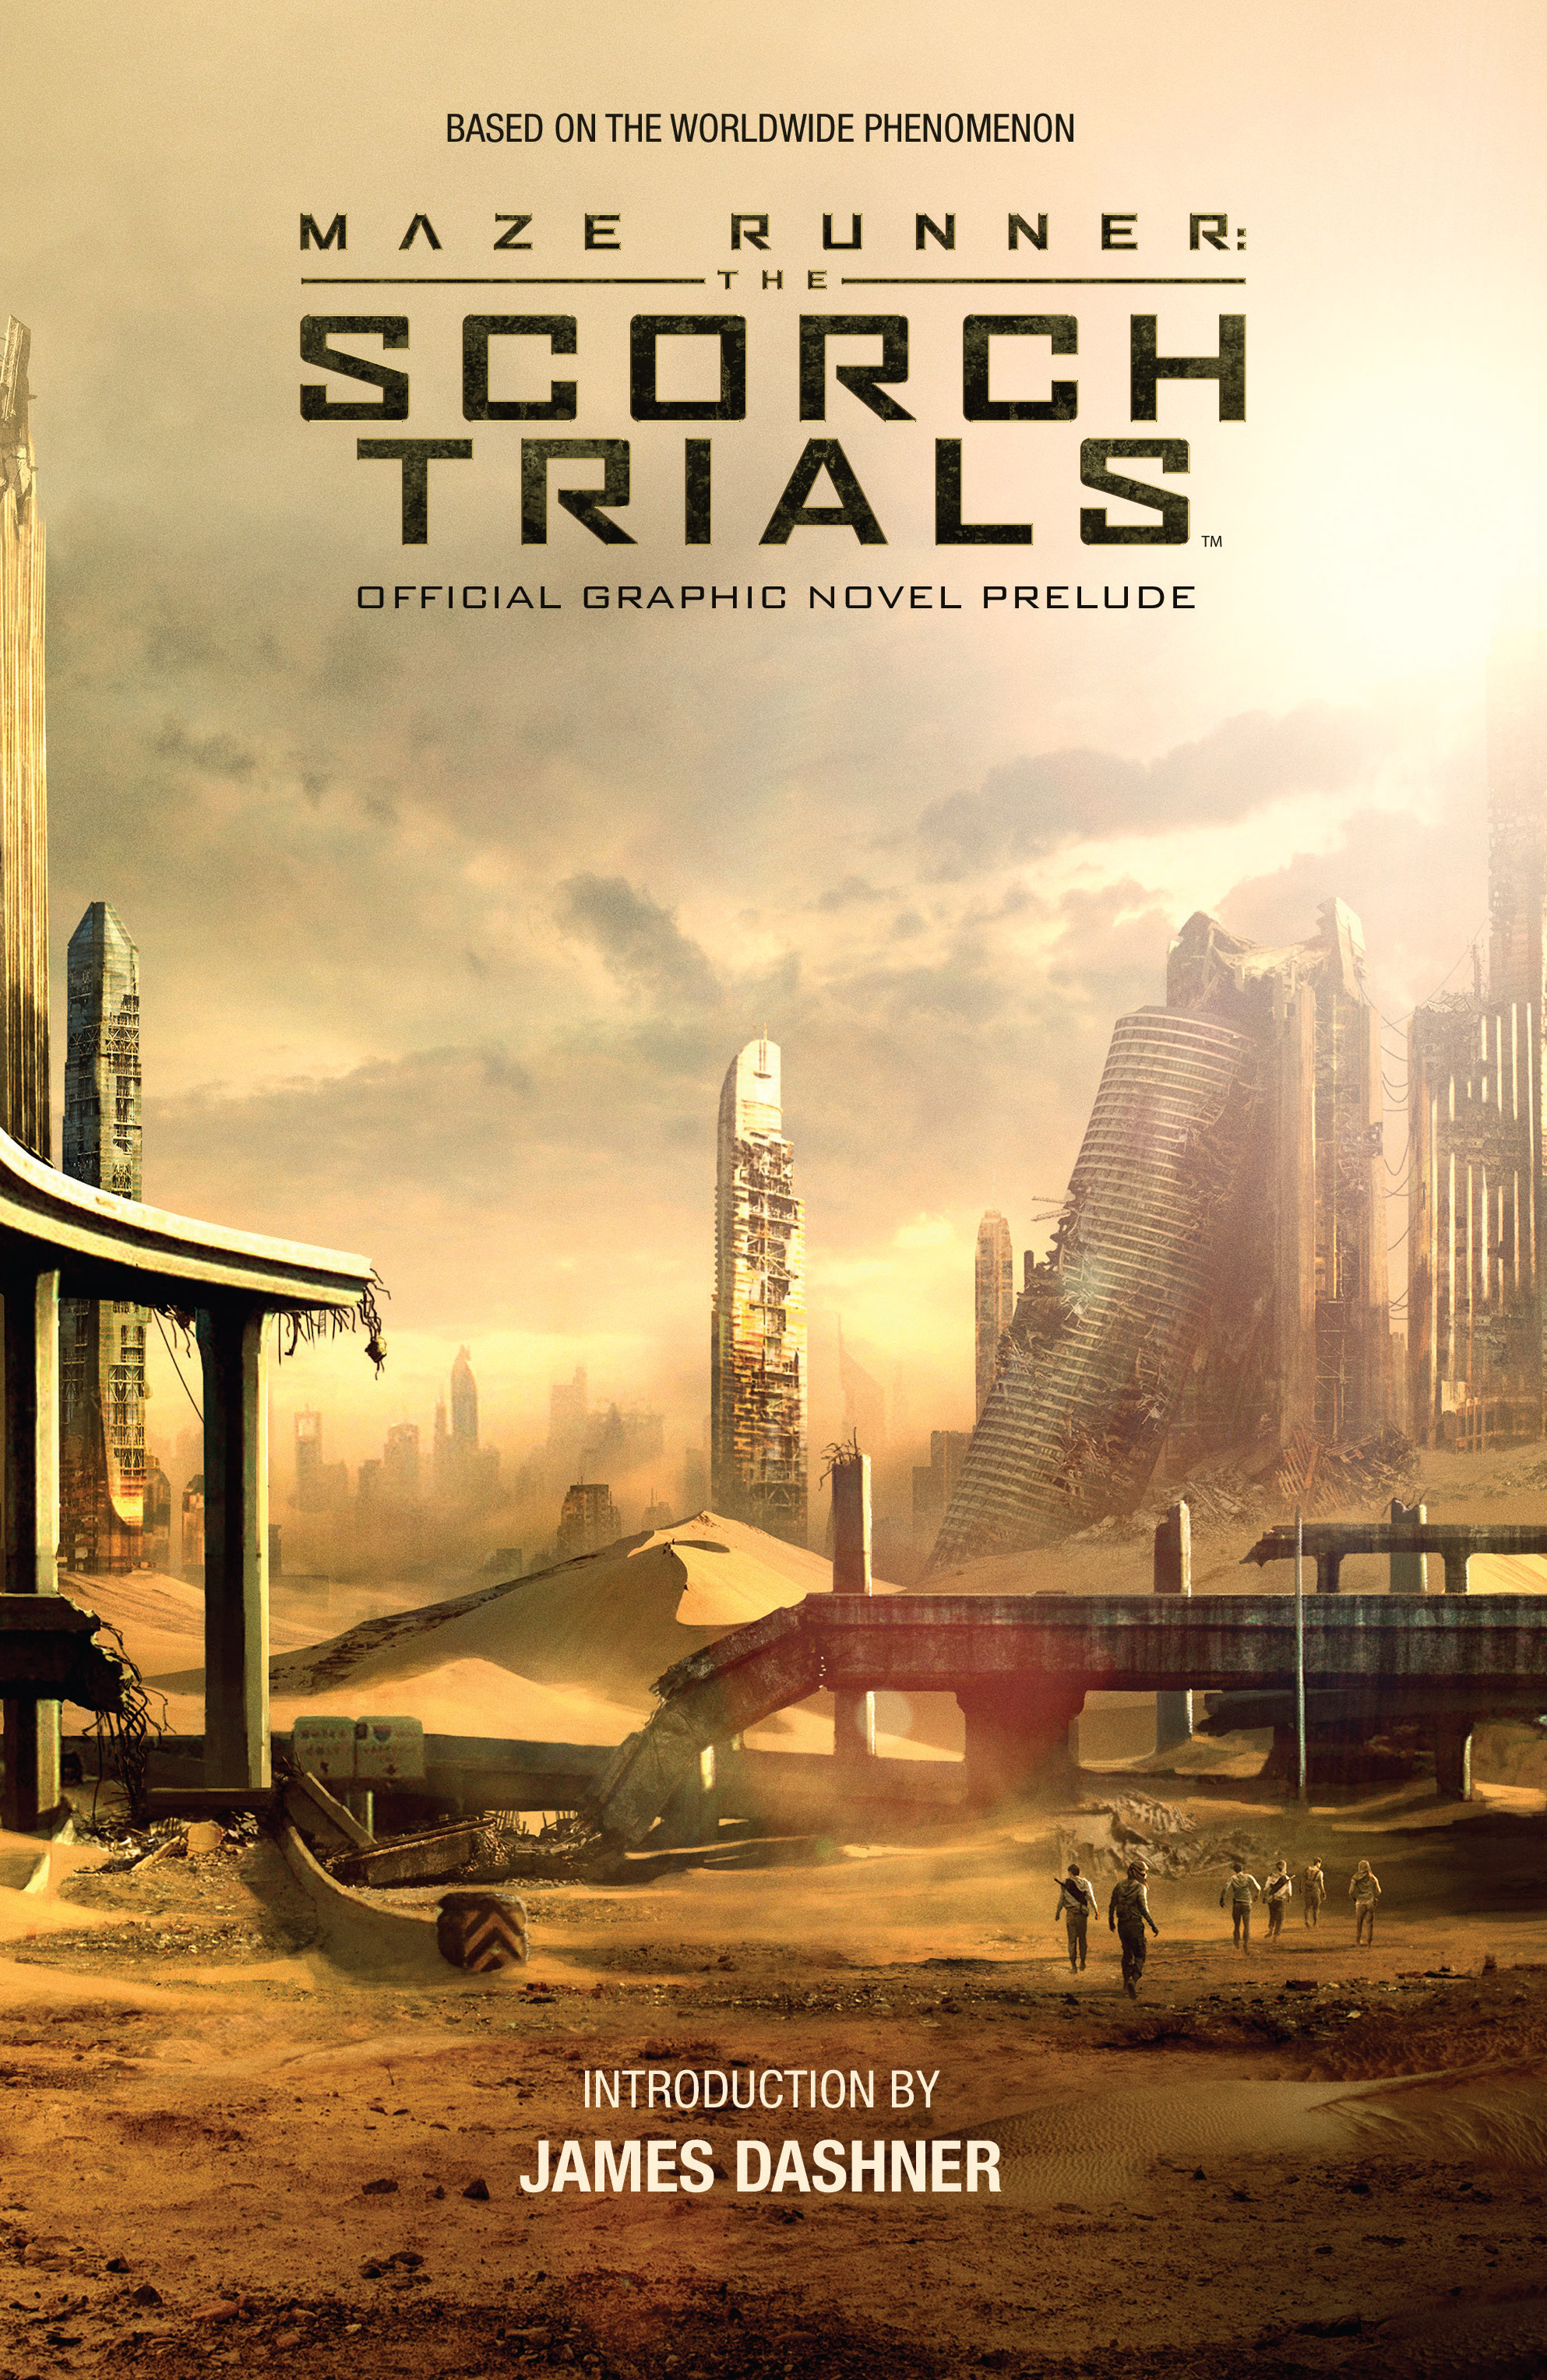 Maze Runner: The Scorch Trials Official Graphic Novel Prelude TPB Page 1